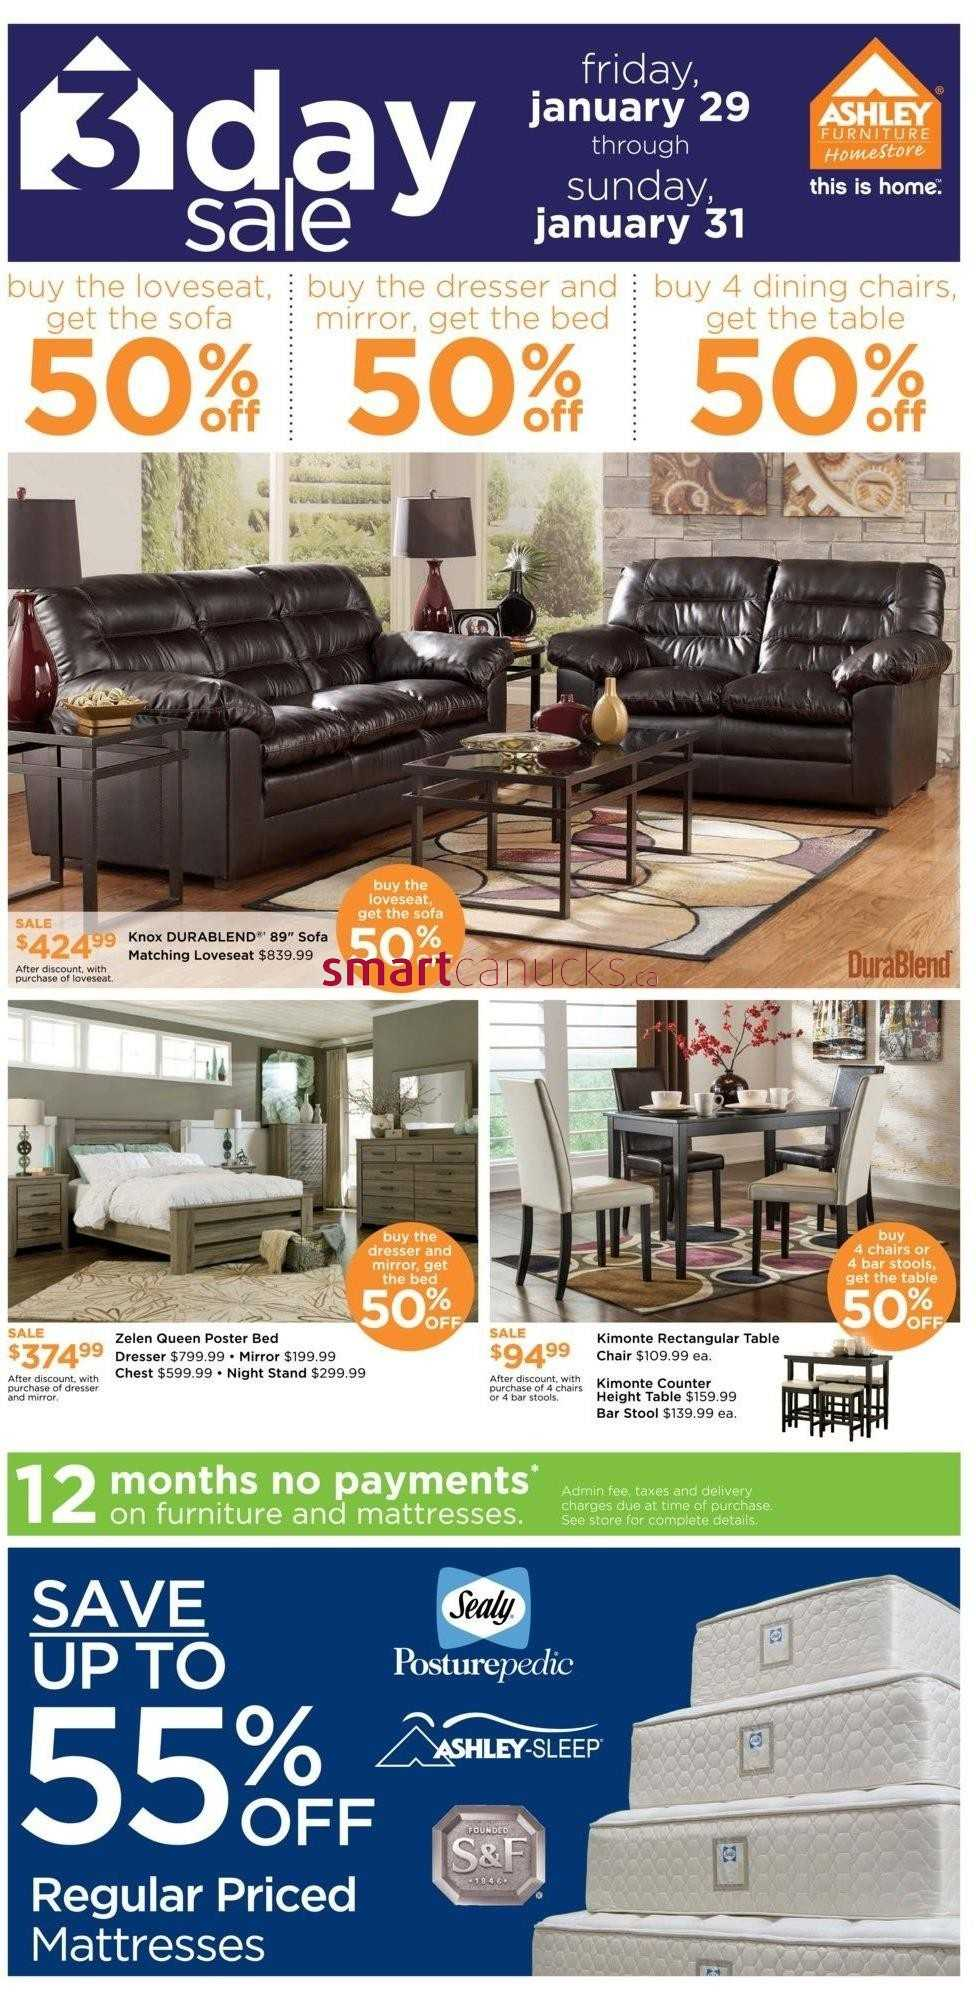 Ashley furniture homestore on flyer january 29 to 31 for Ashley furniture homestore canada